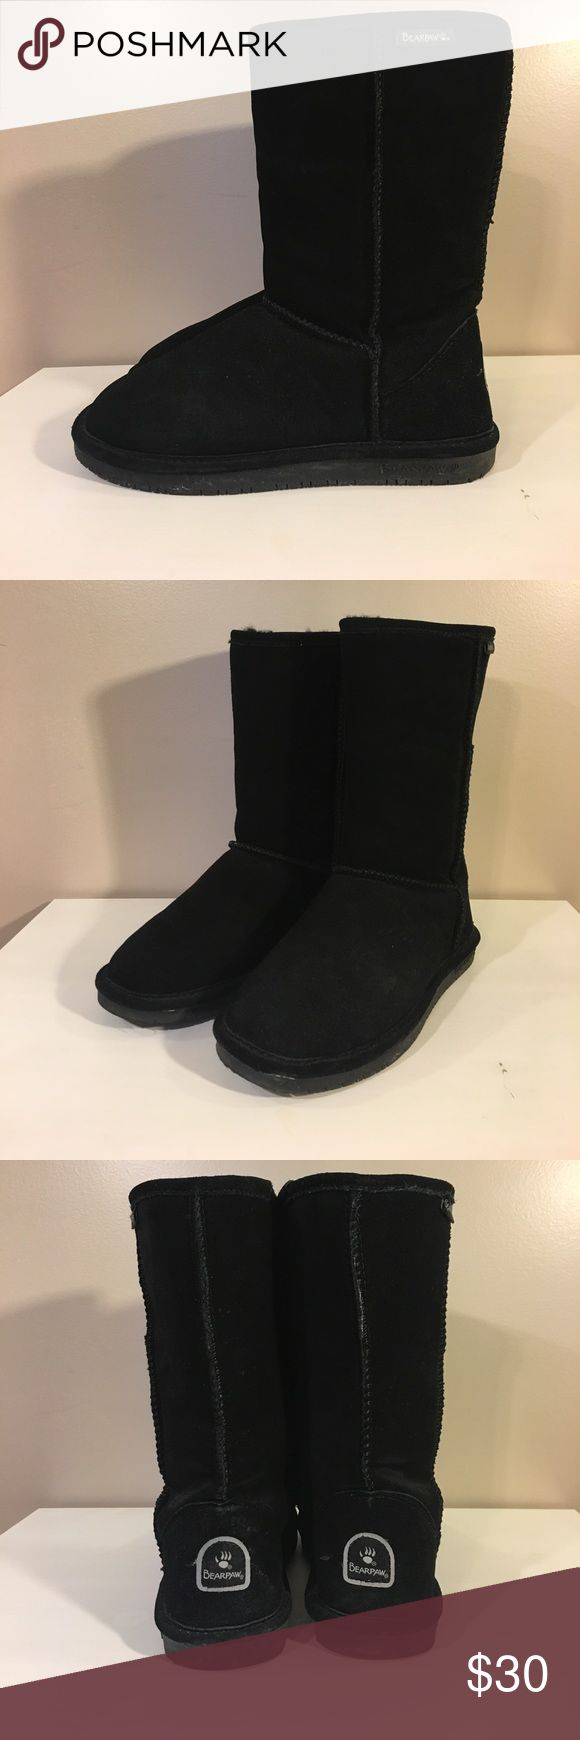 BearPaw Boots Size 8 BearPaw boots, few small dirt spots, make an offer BearPaw Shoes Winter & Rain Boots